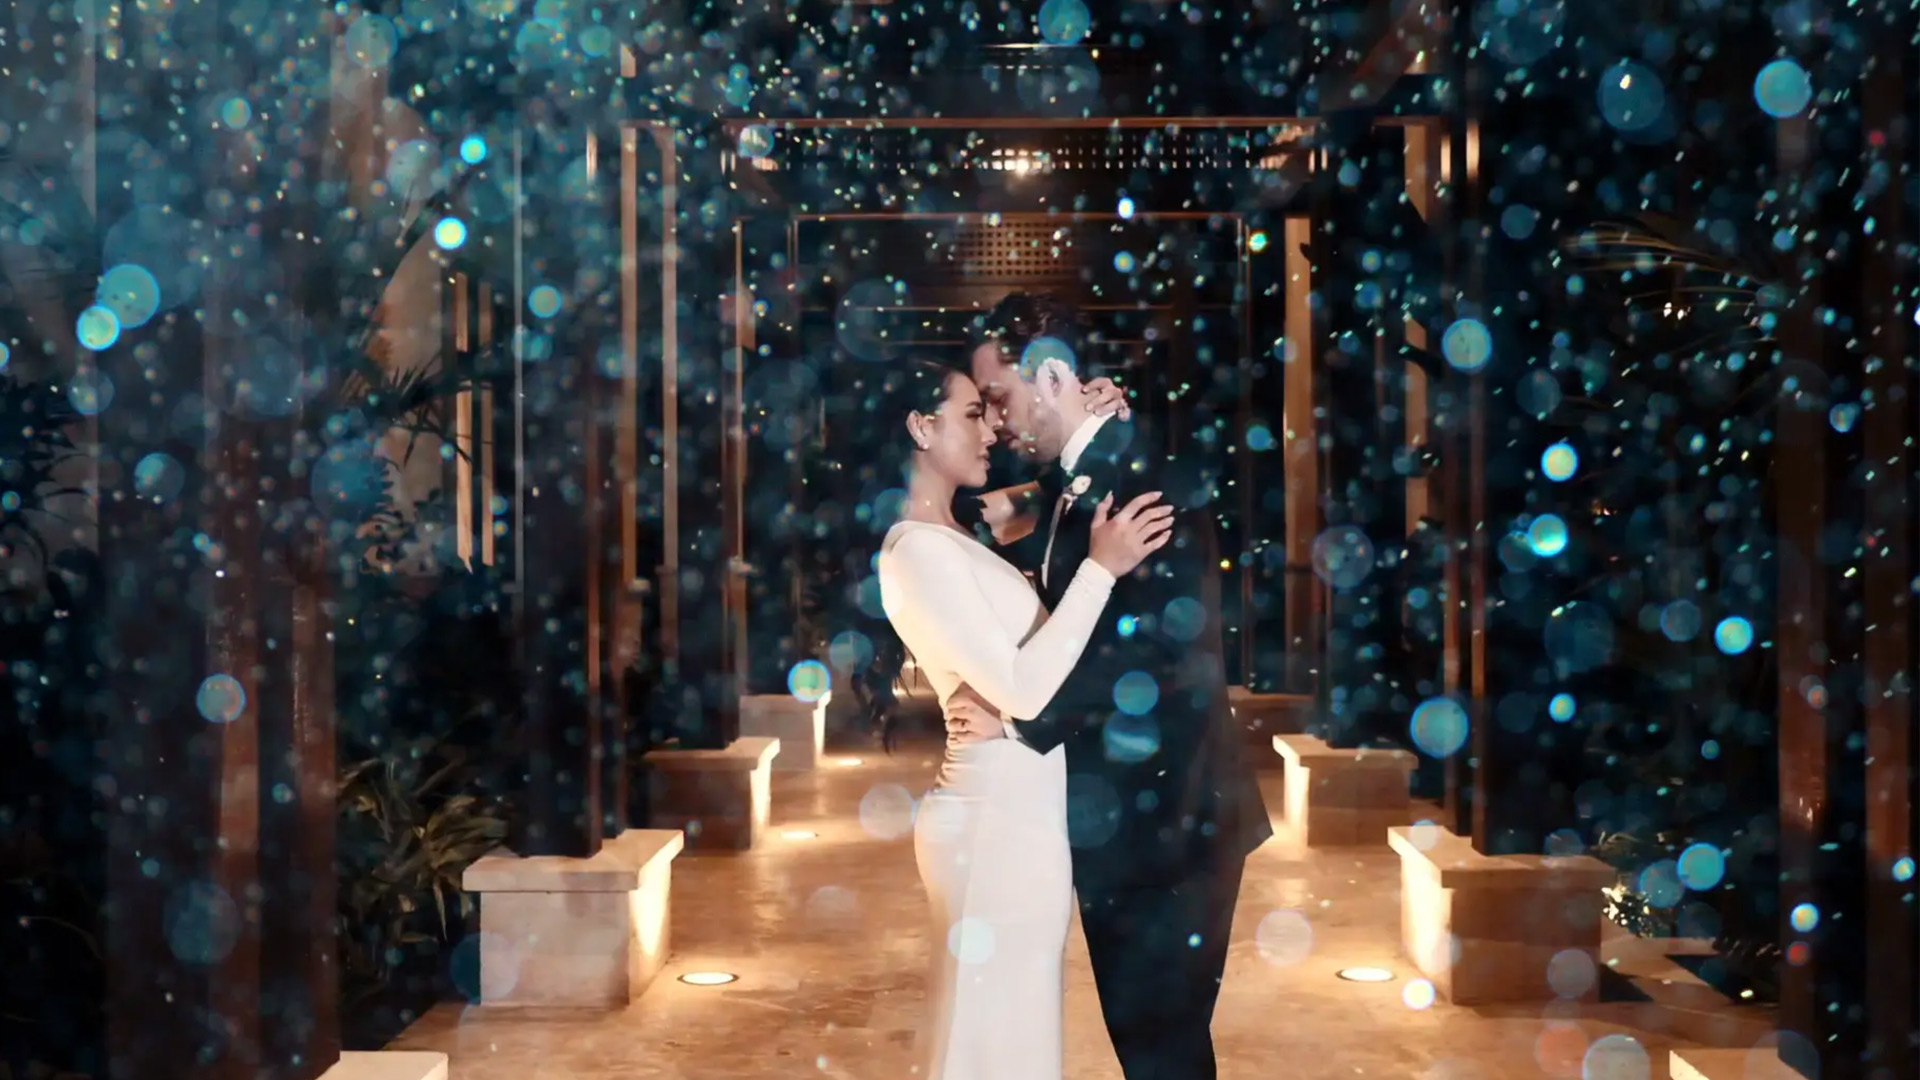 Christy Kim & Damir Highlights